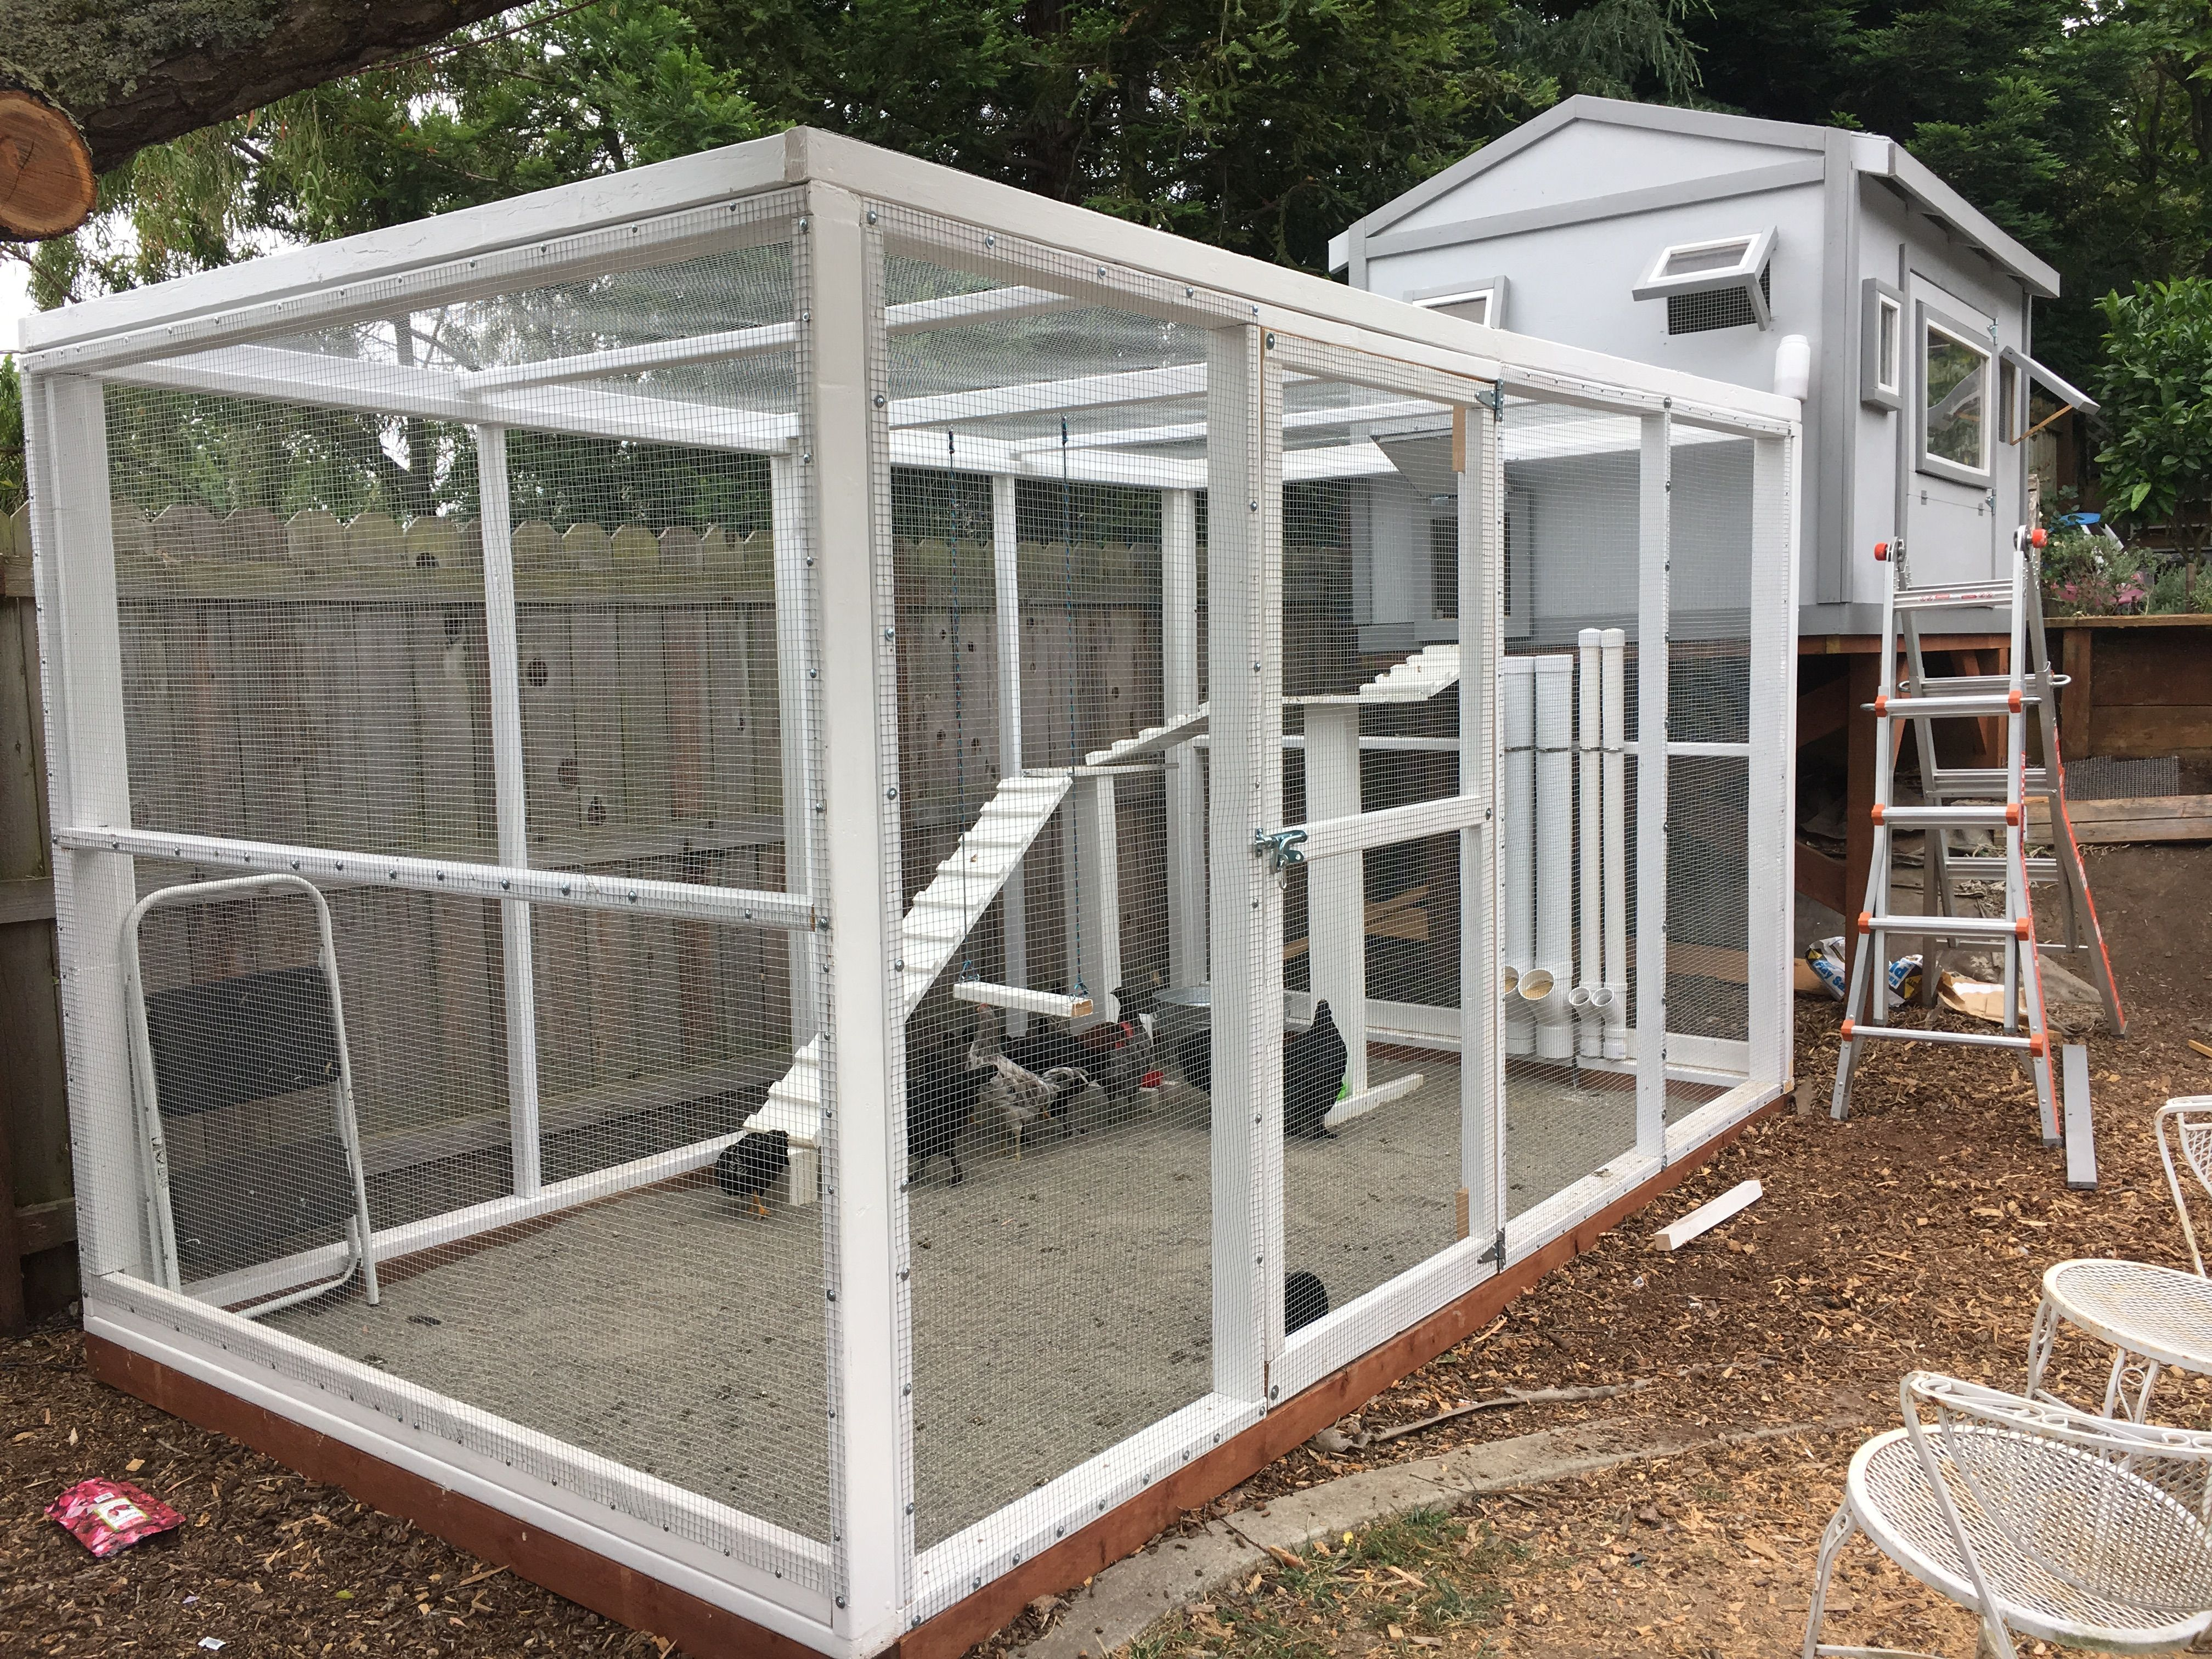 The chicken penthouse s vincent 2017 fully enclosed 1 2 for Enclosed chicken run plans